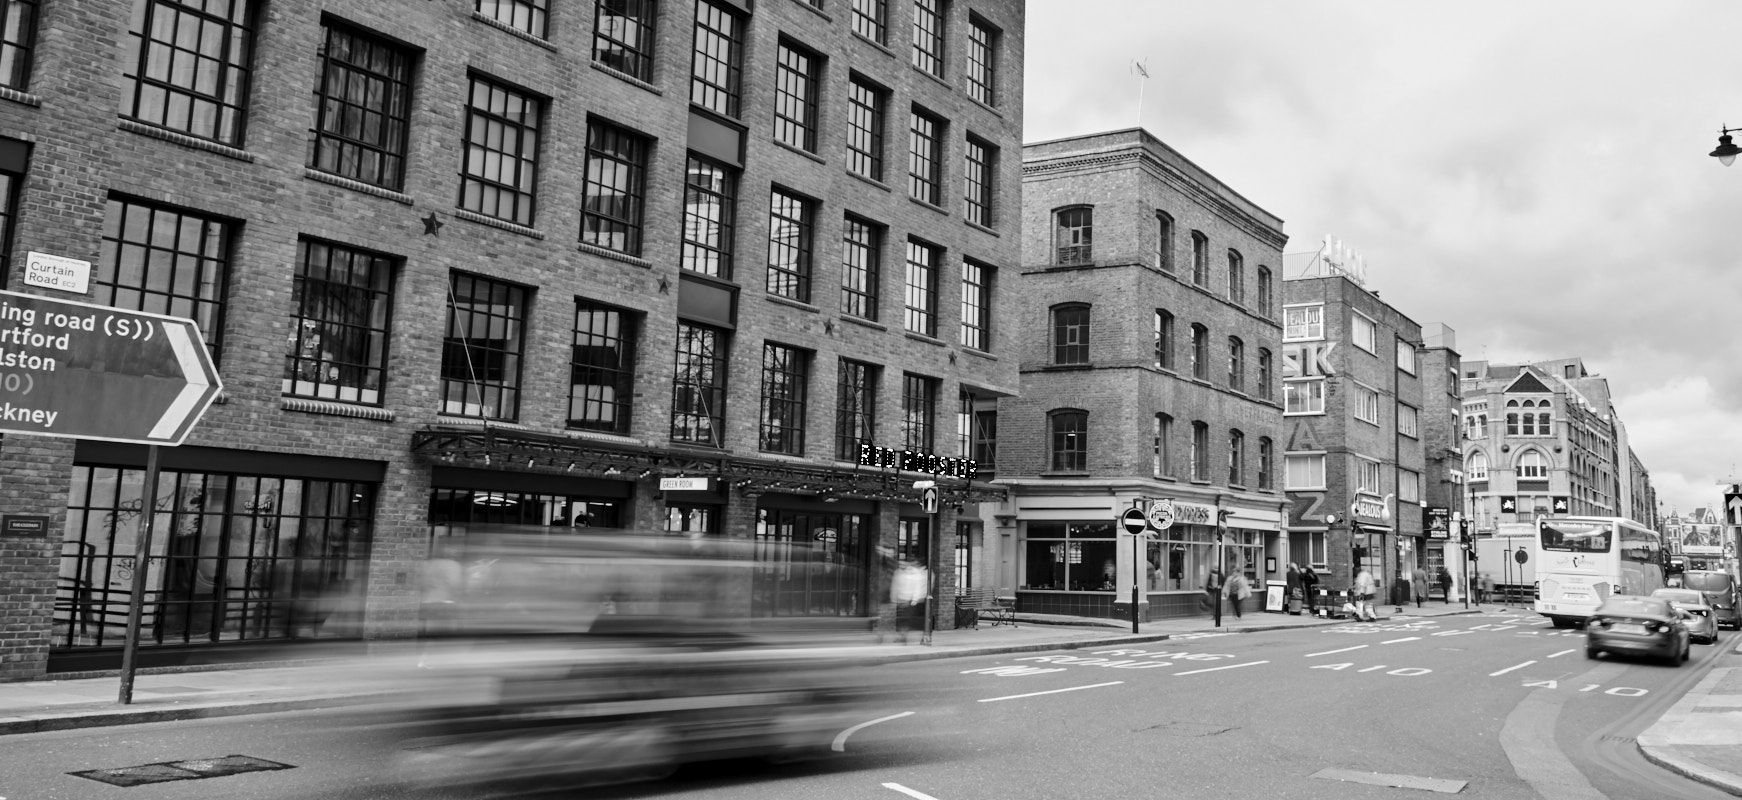 An image of East London streets shot in black and white